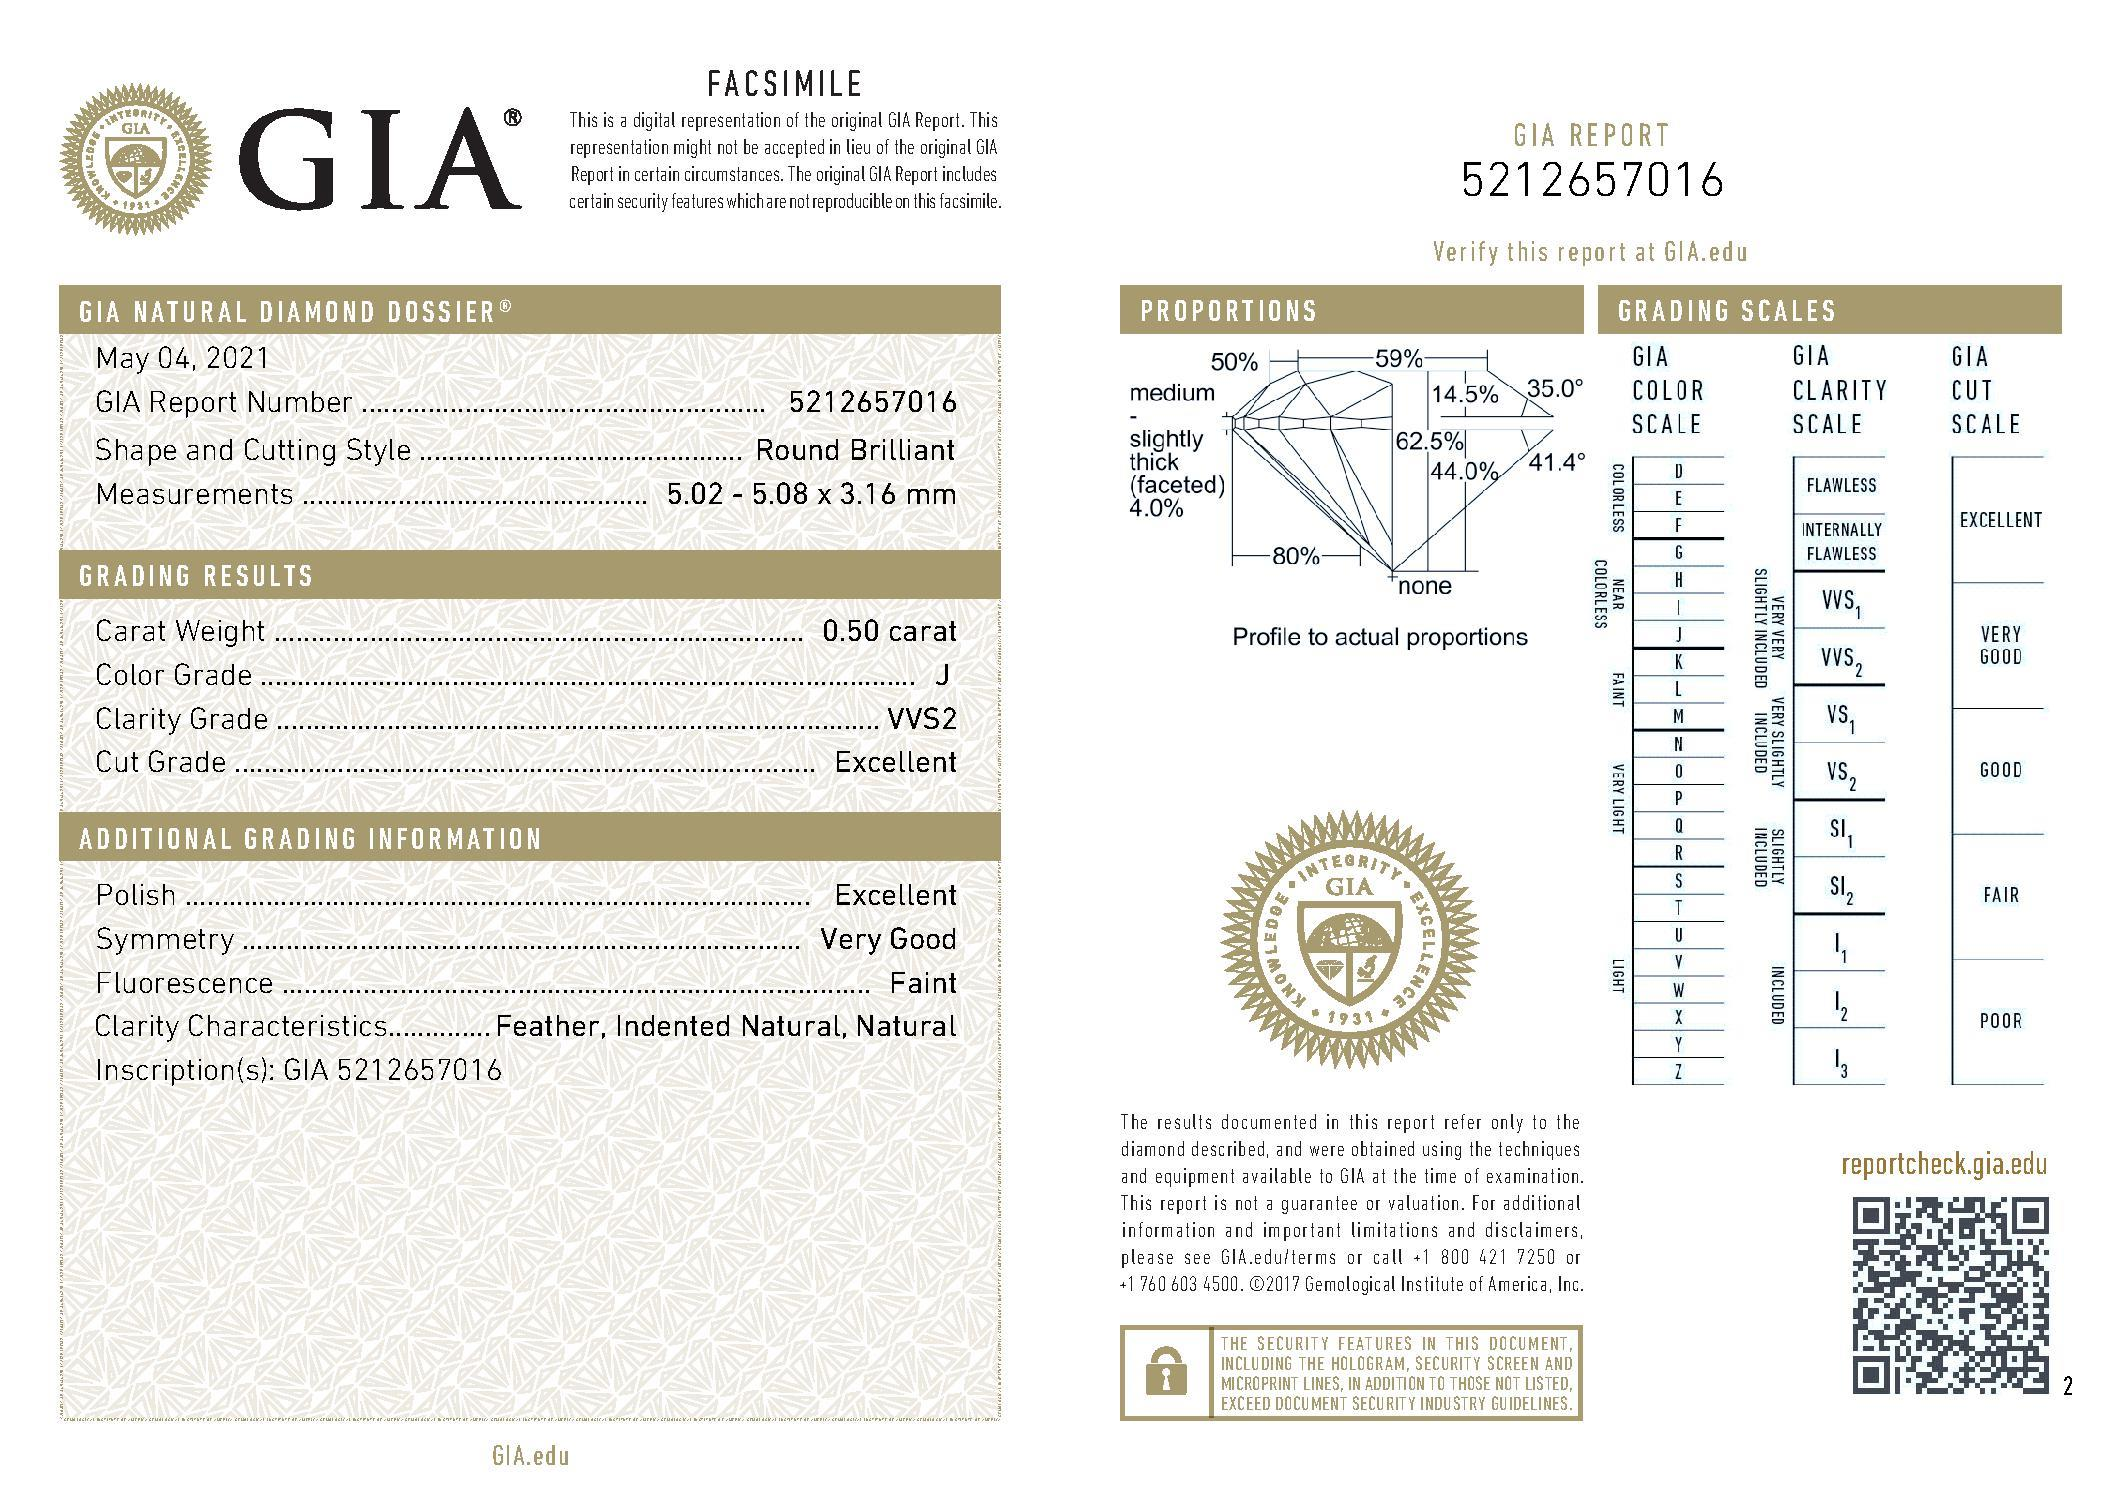 This is a 0.50 carat round shape, J color, VVS2 clarity natural diamond accompanied by a GIA grading report.